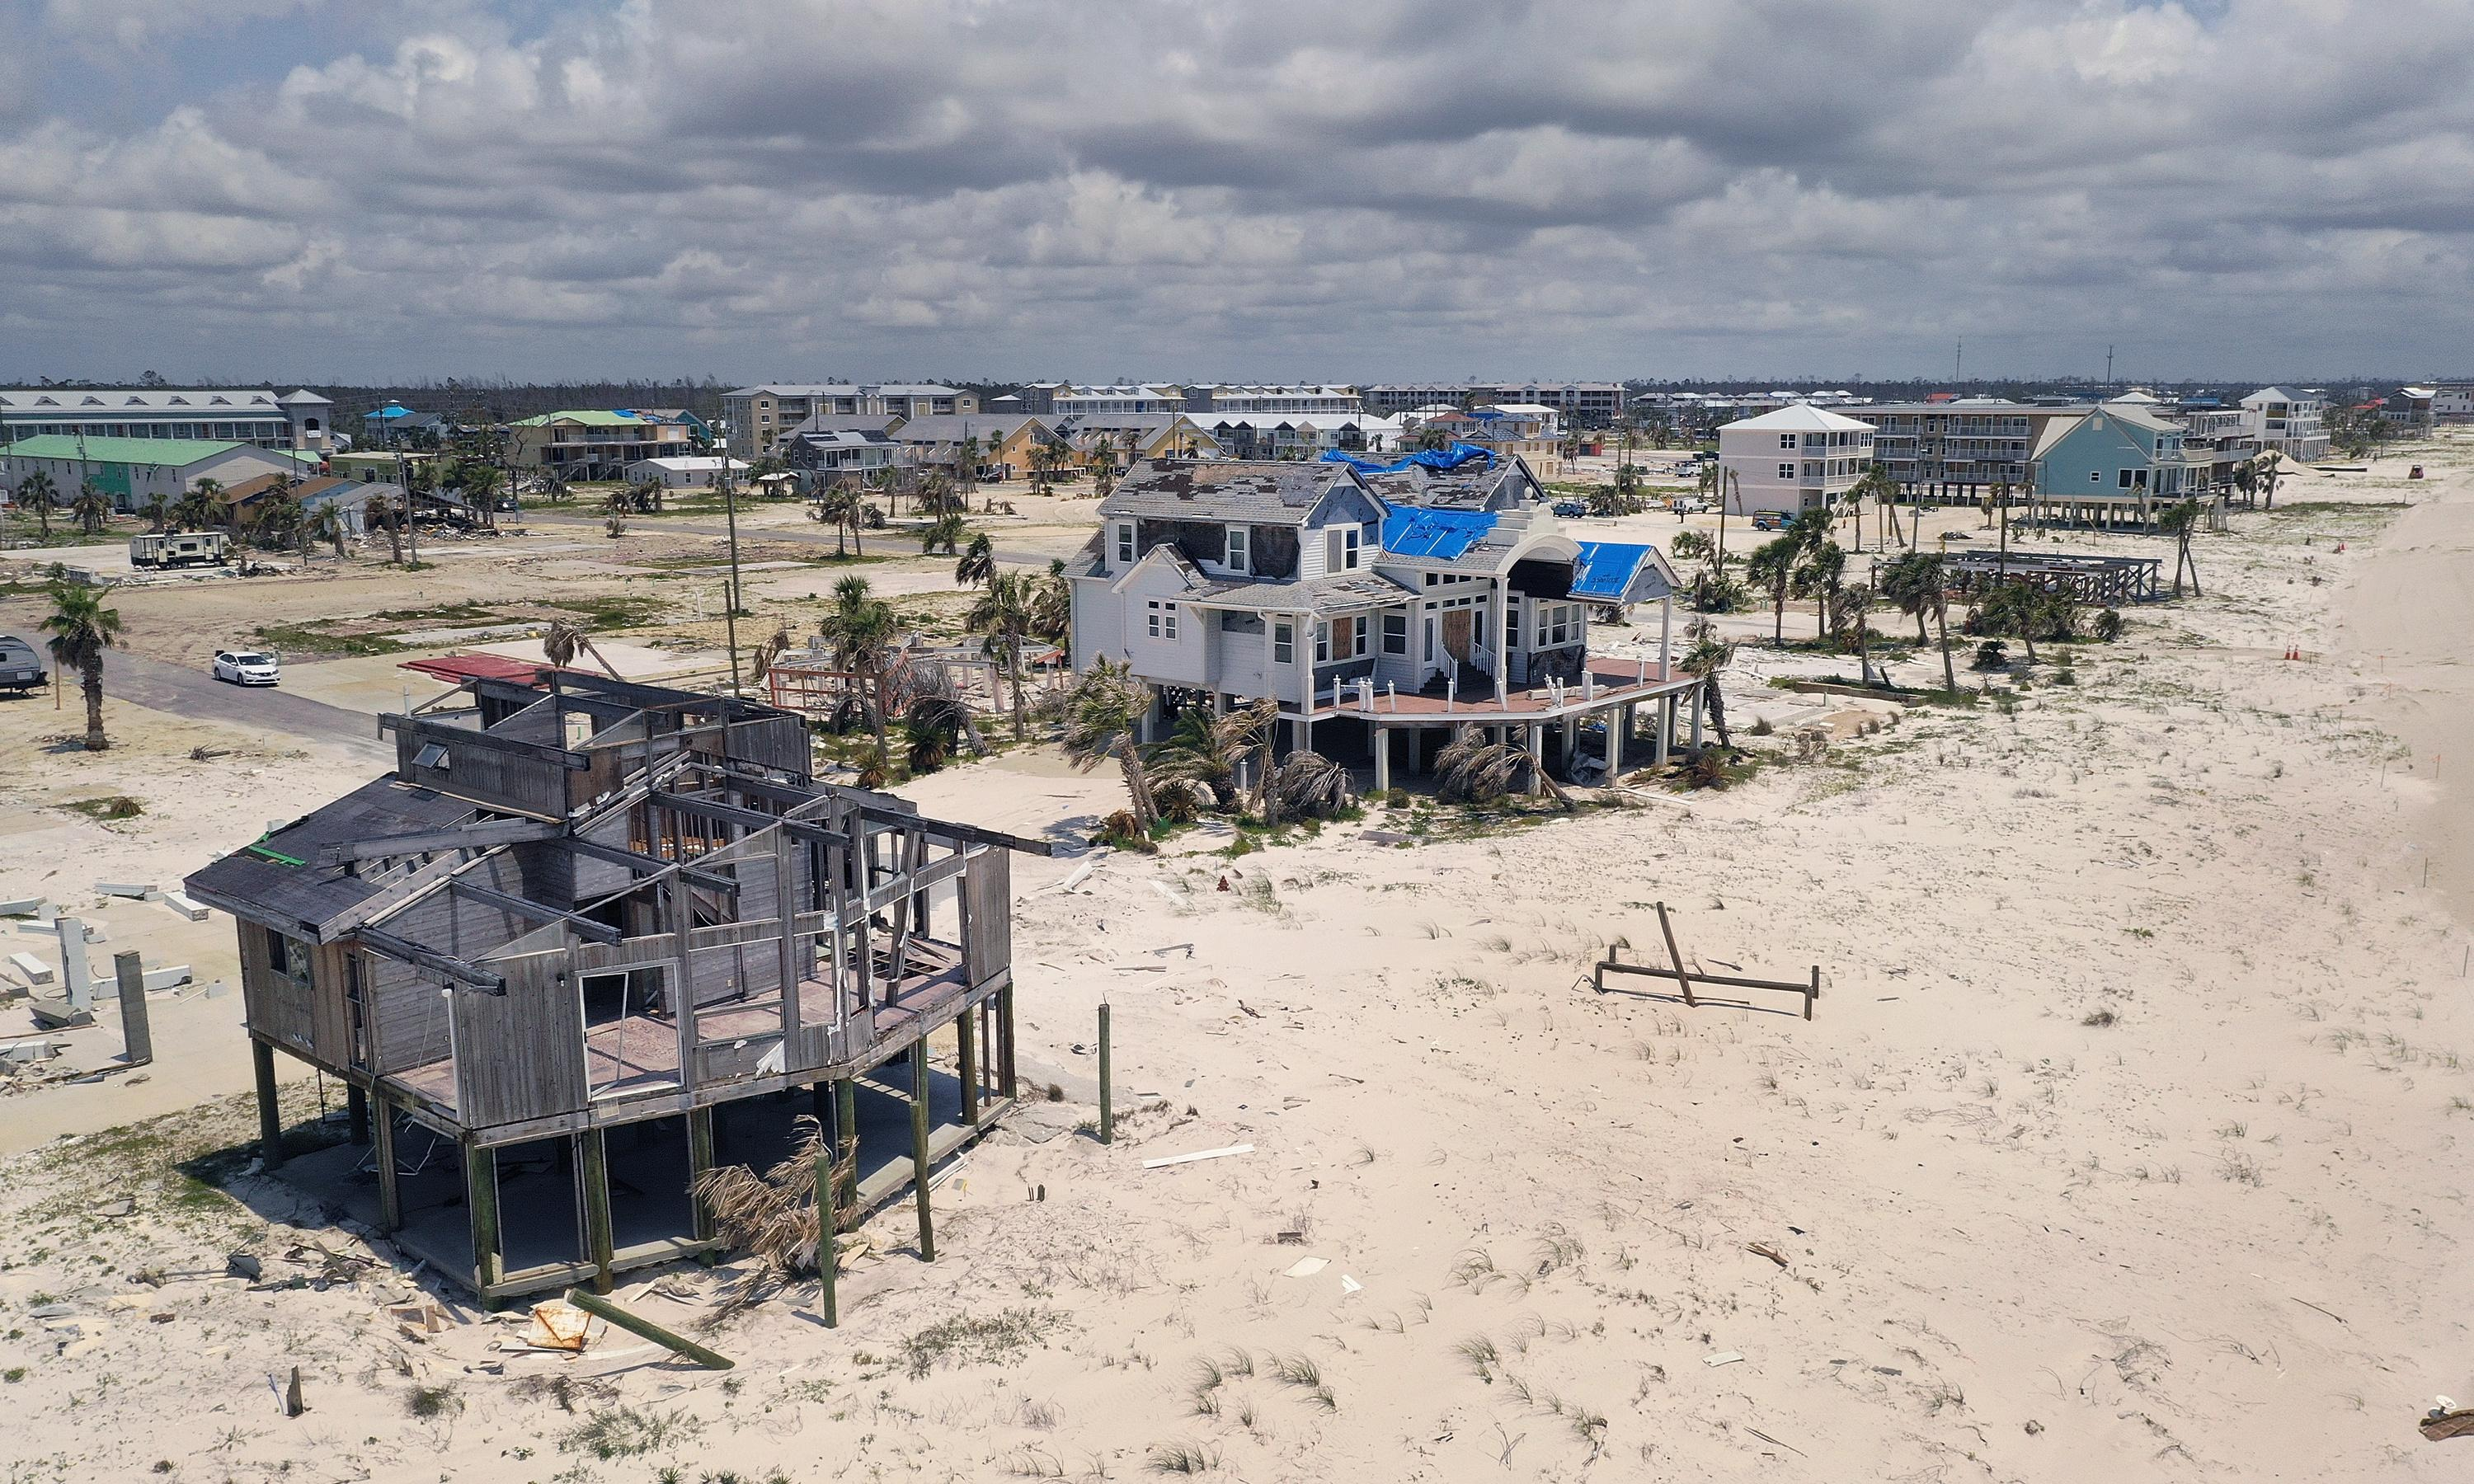 'Forgotten coast': a Florida town fights to rebuild after Hurricane Michael